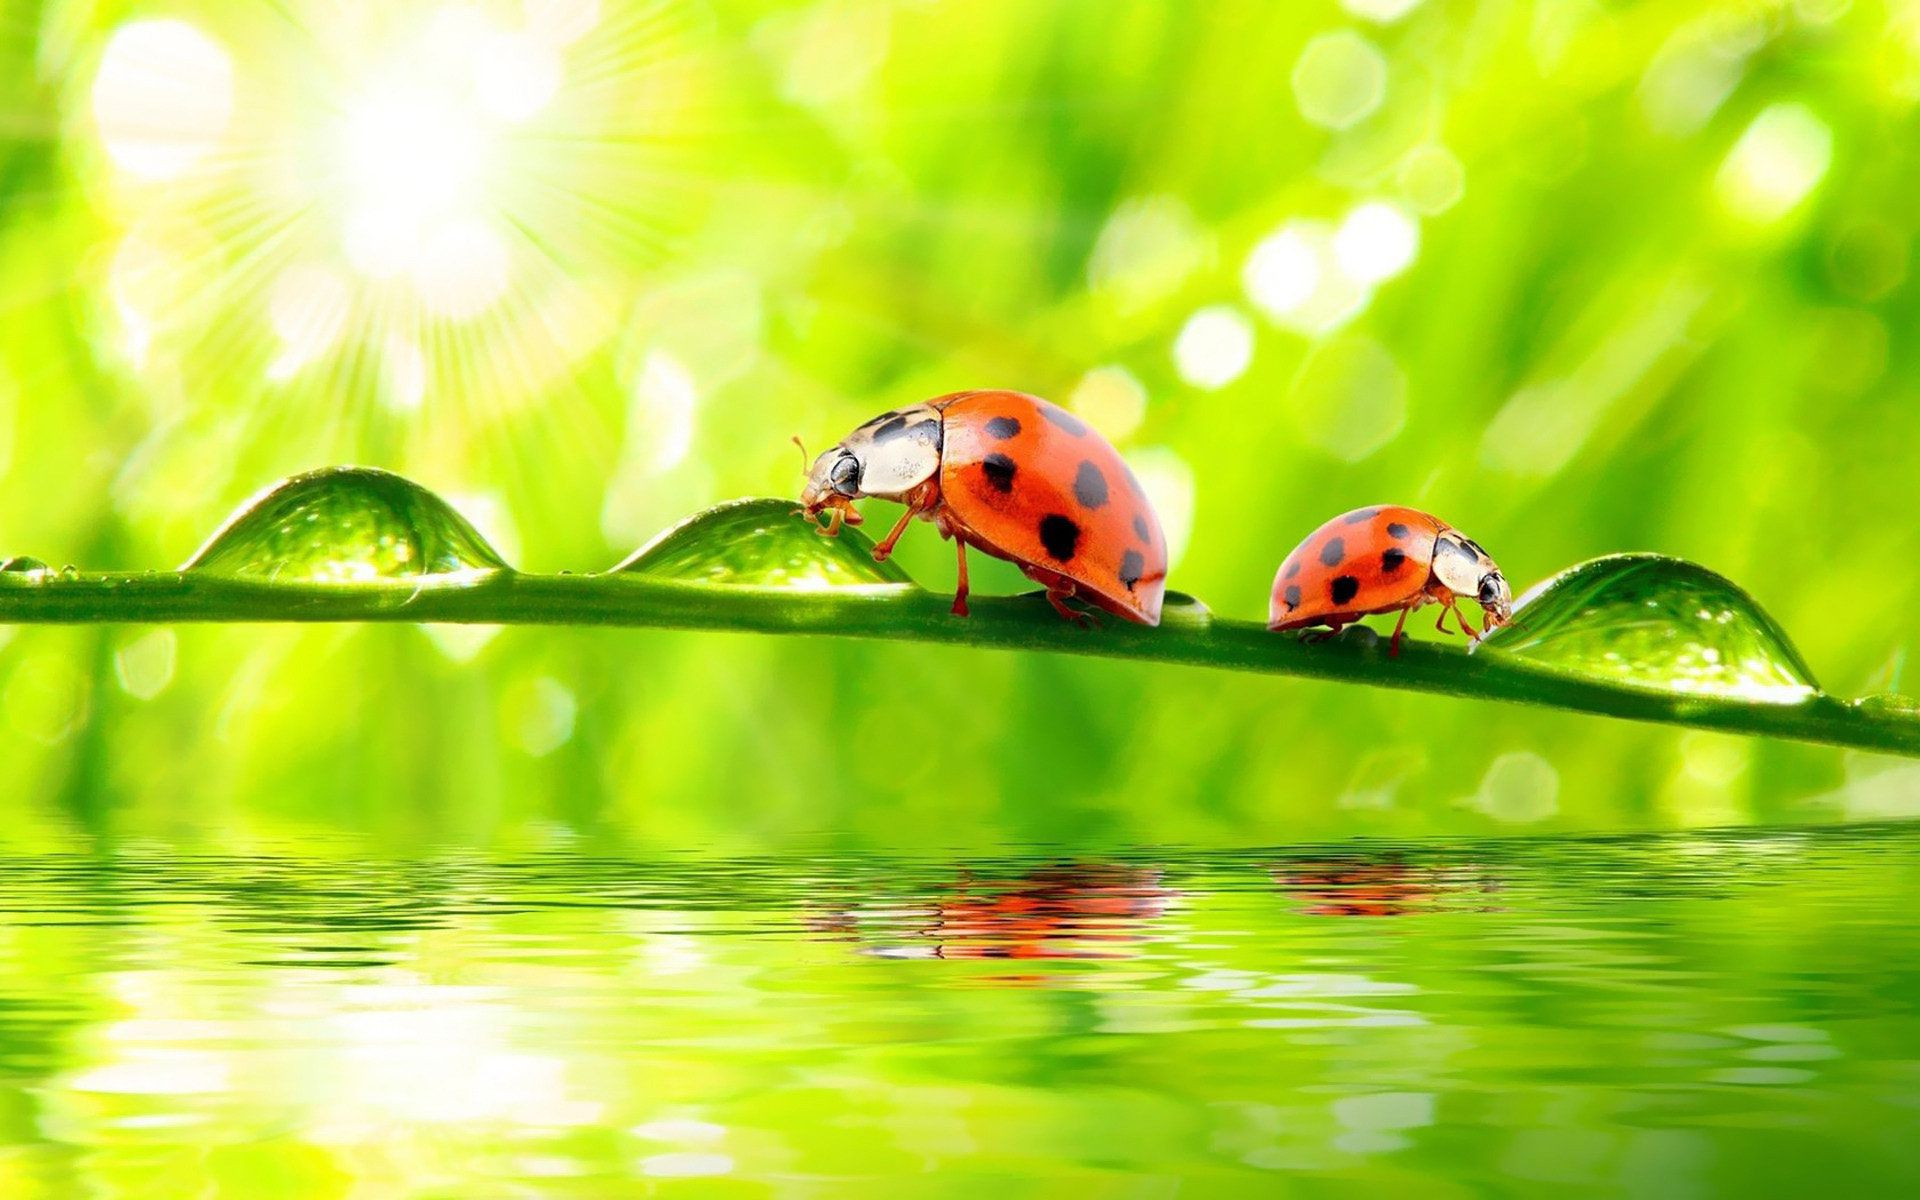 Ladybug Full HD Wallpaper And Background Image